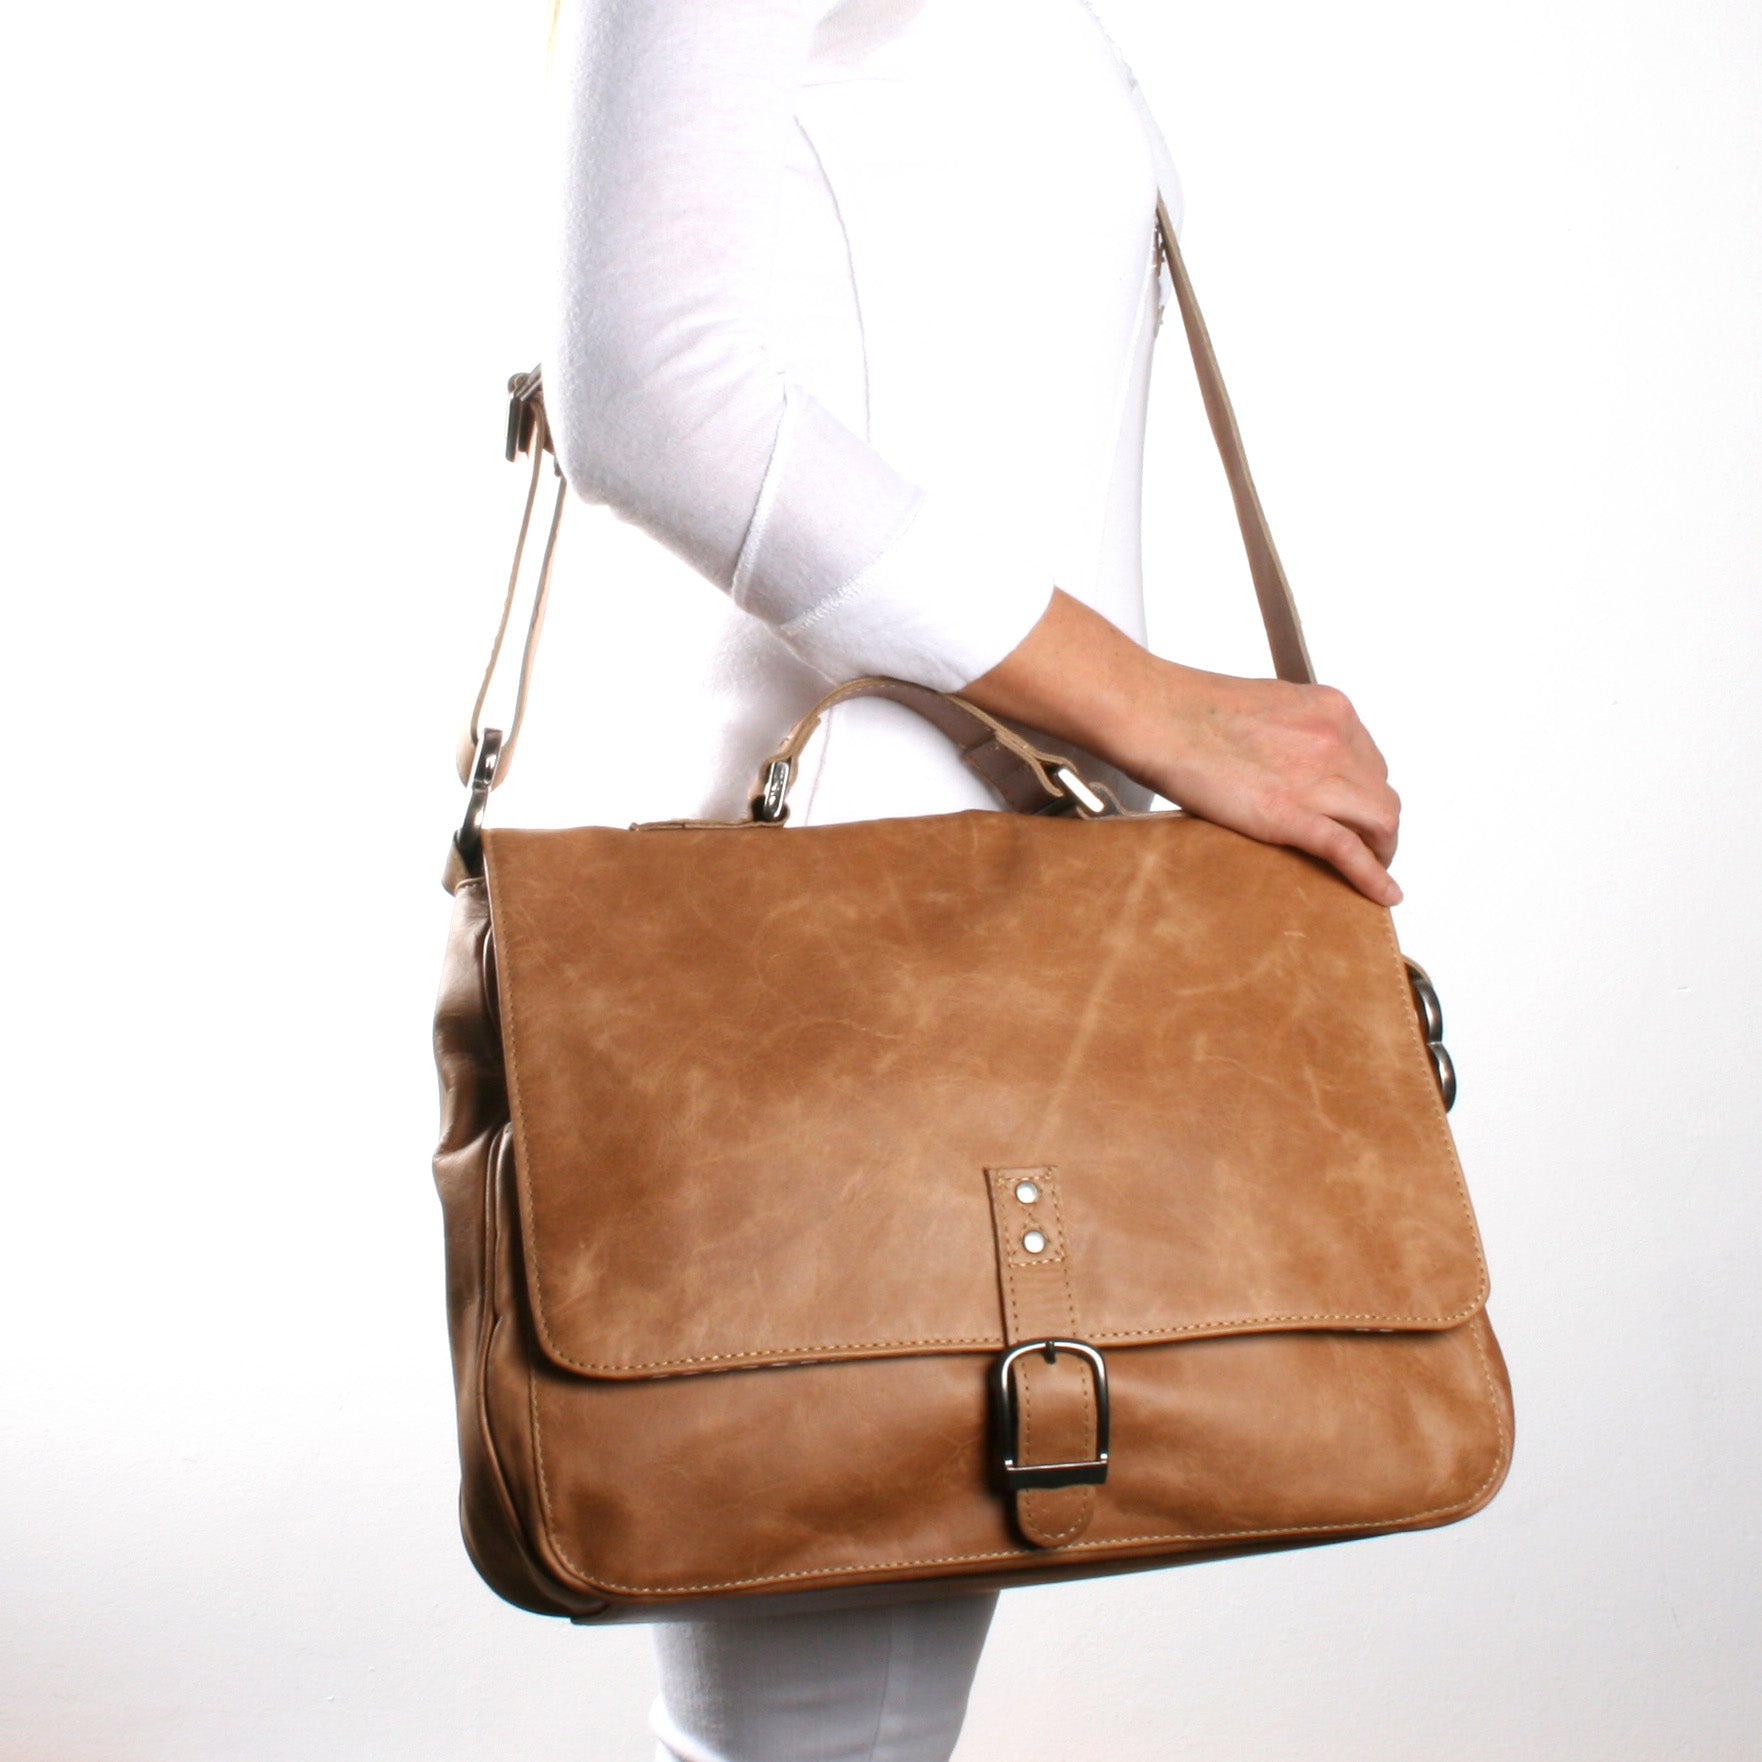 Thandana Work Satchel - Hazelnut - Zufrique Boutique